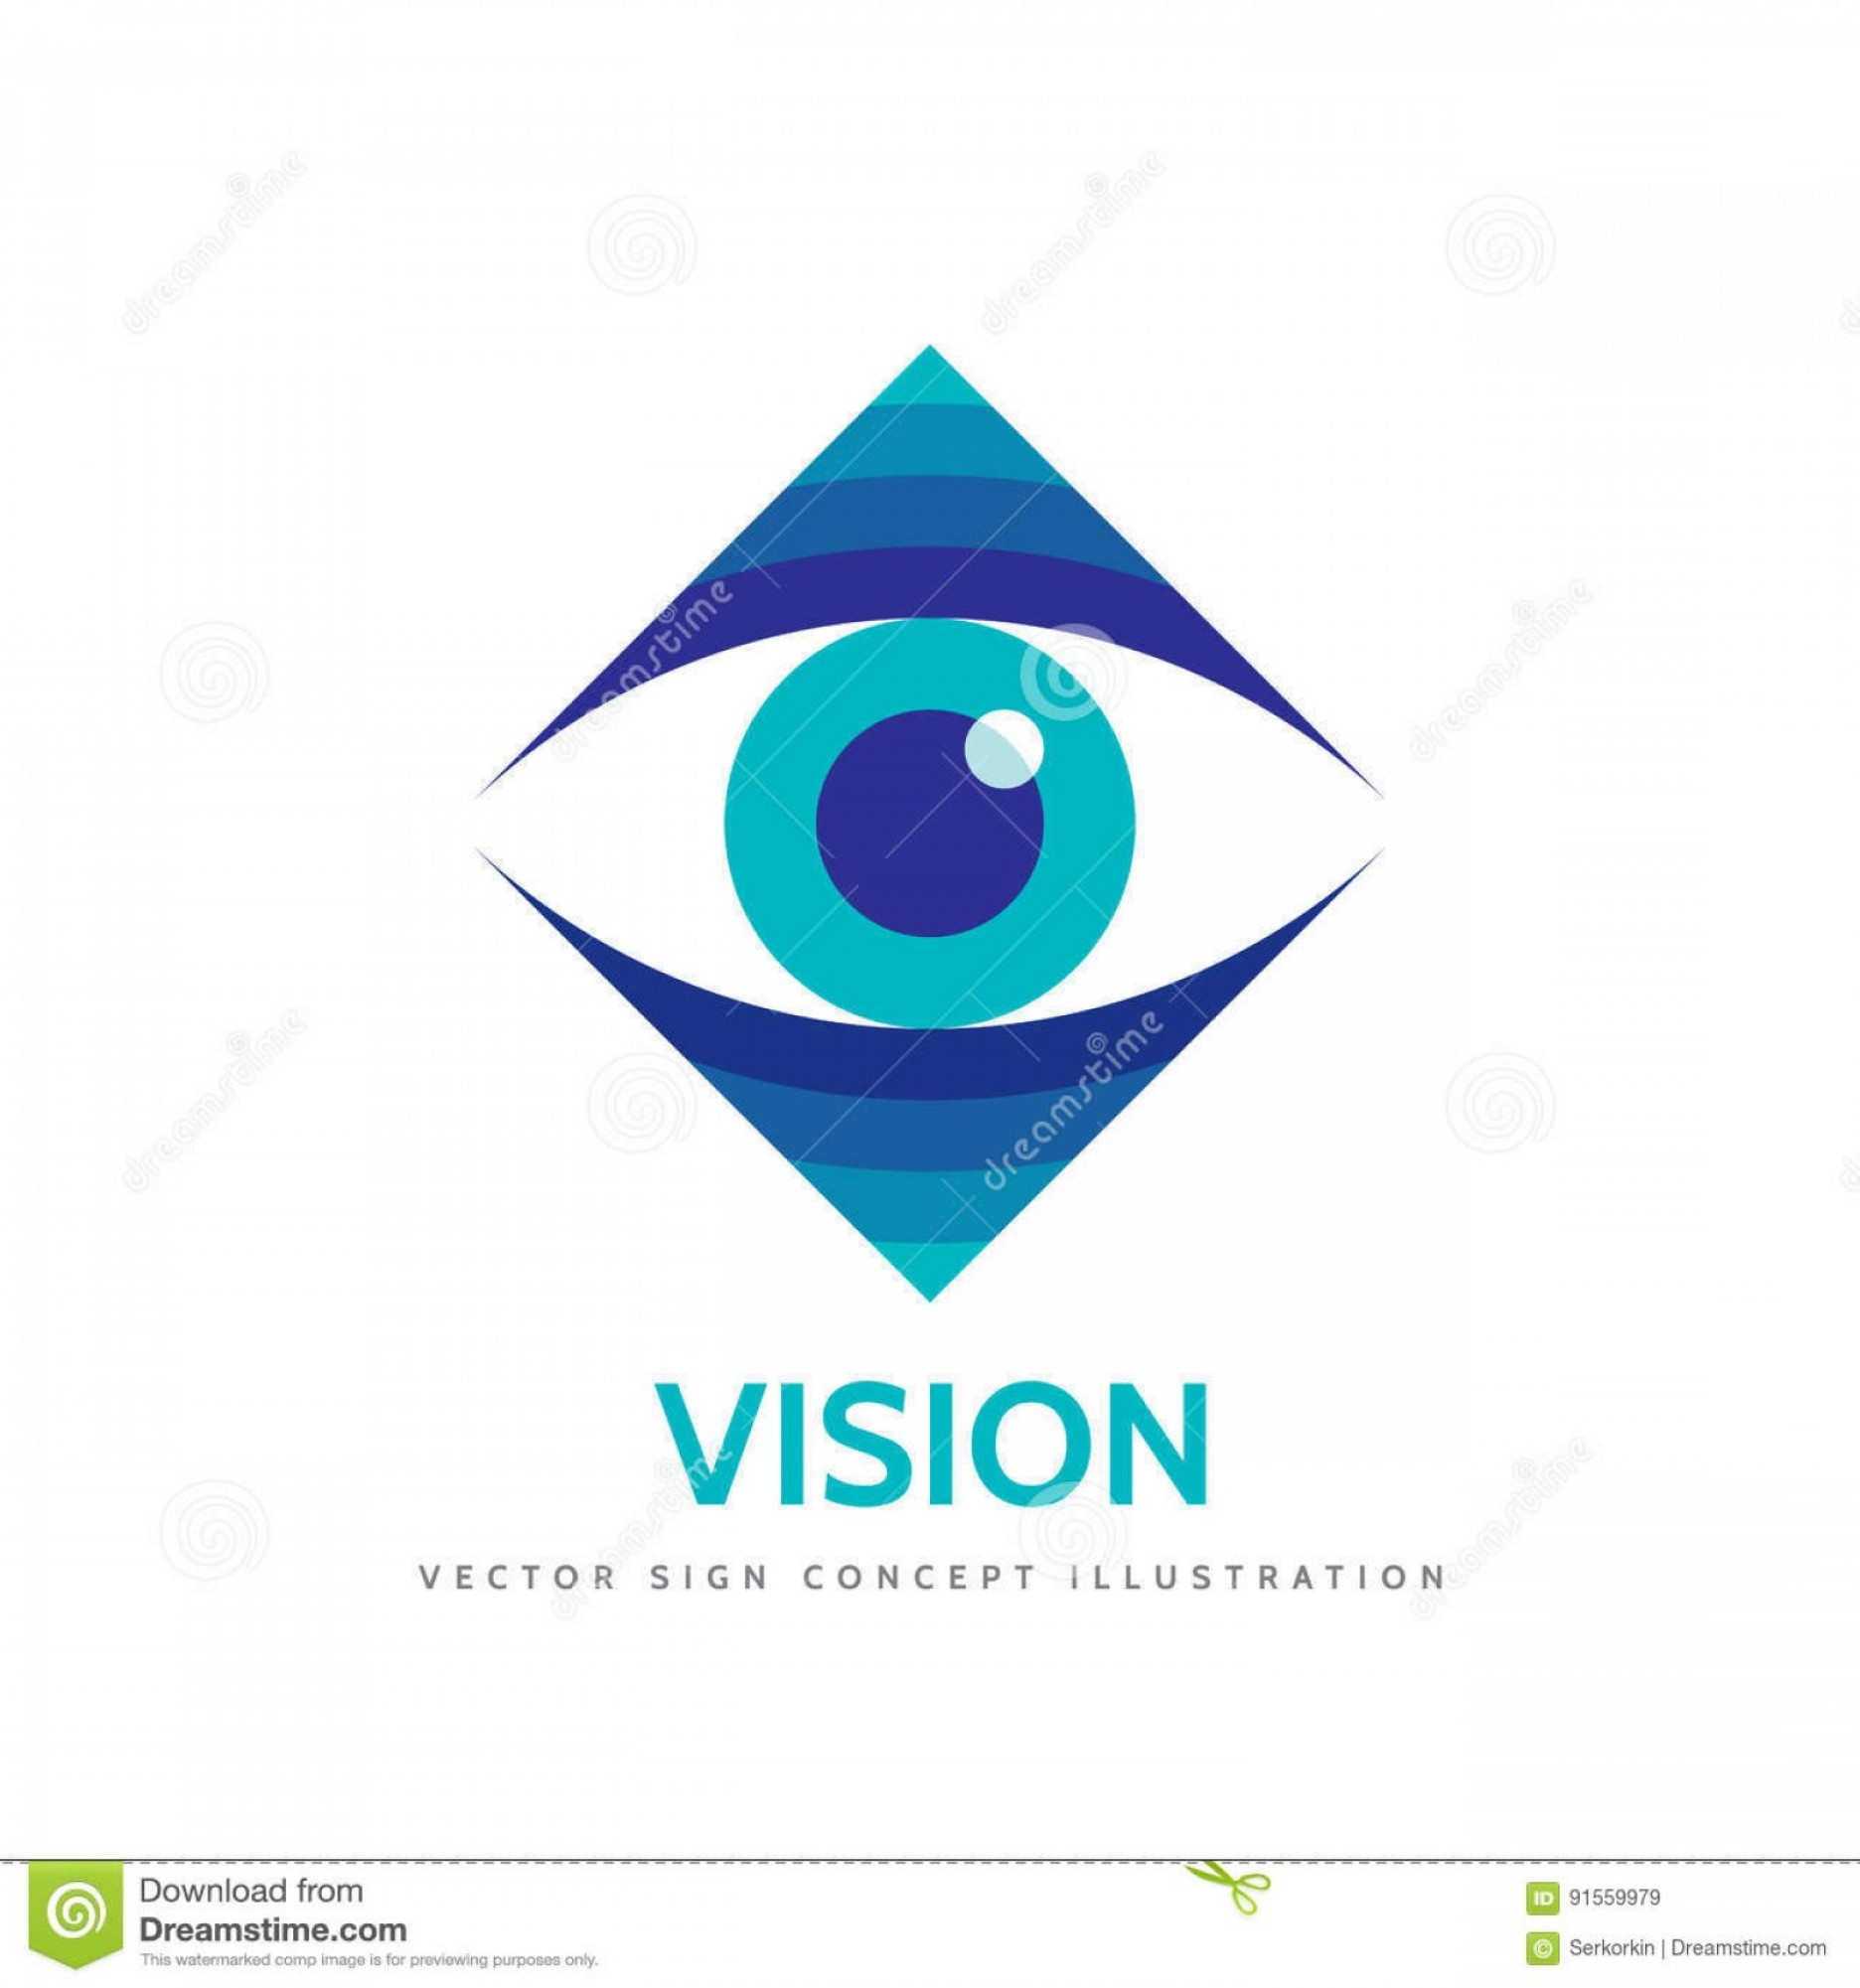 Eye Vector Logo: Stock Illustration Vision Vector Logo Template Concept Illustration Human Eye Medicine Ophthalmology Sign Design Element Image